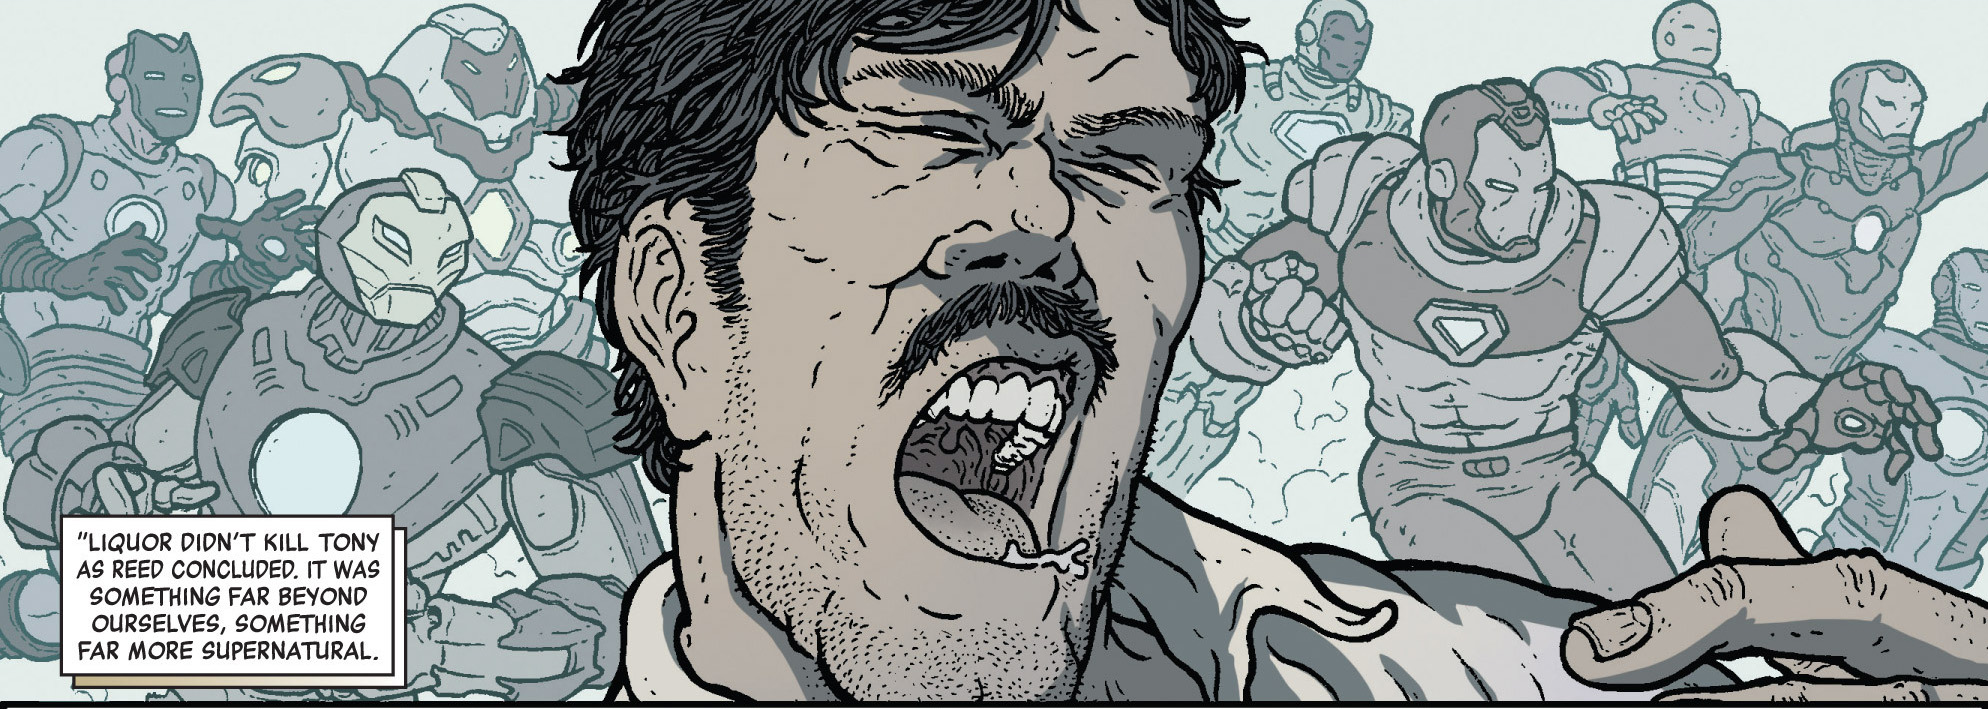 Anthony Stark (Earth-62412) from What If? Age of Ultron Vol 1 2 001.jpg